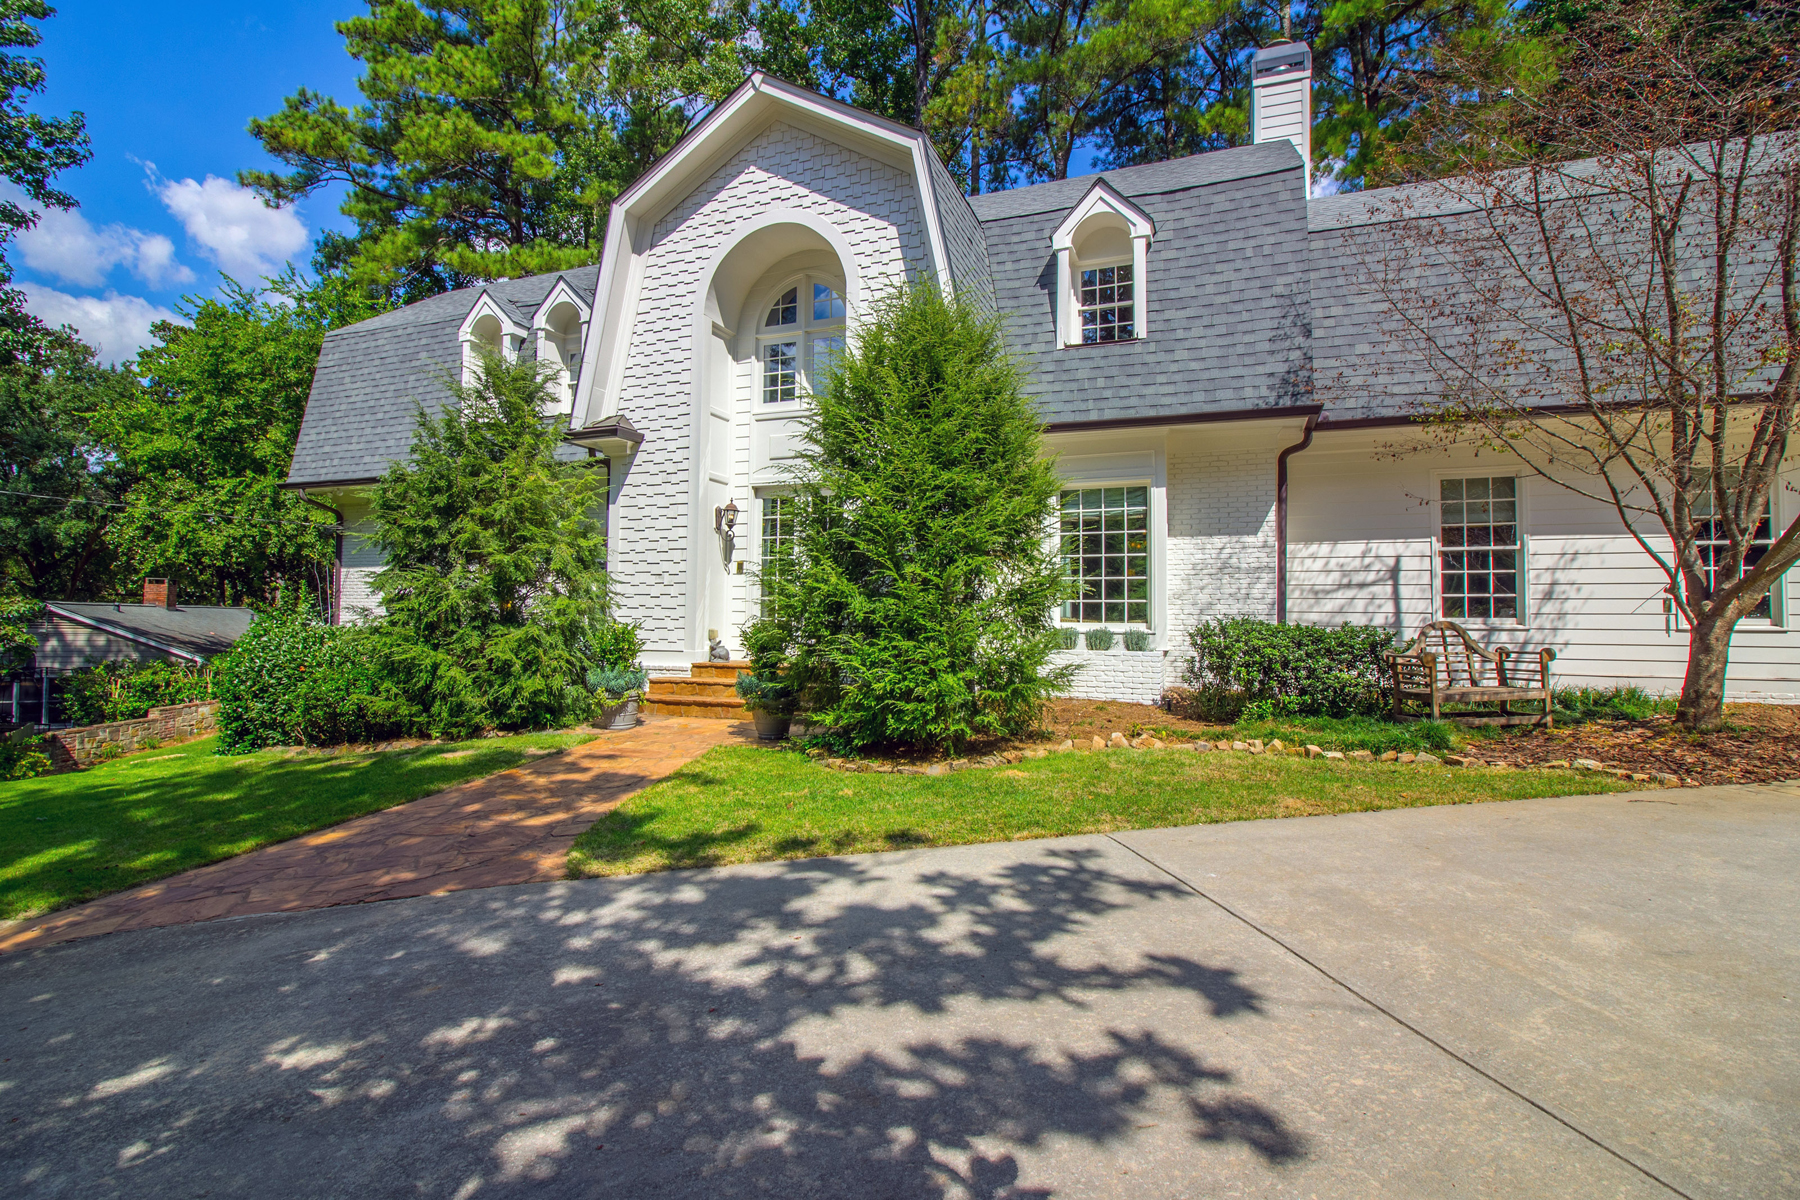 Nhà ở một gia đình vì Bán tại Large Open Concept Home In One Of Buckhead's Best Neighborhoods 3115 E Wood Valley Road NW Atlanta, Georgia 30327 Hoa Kỳ